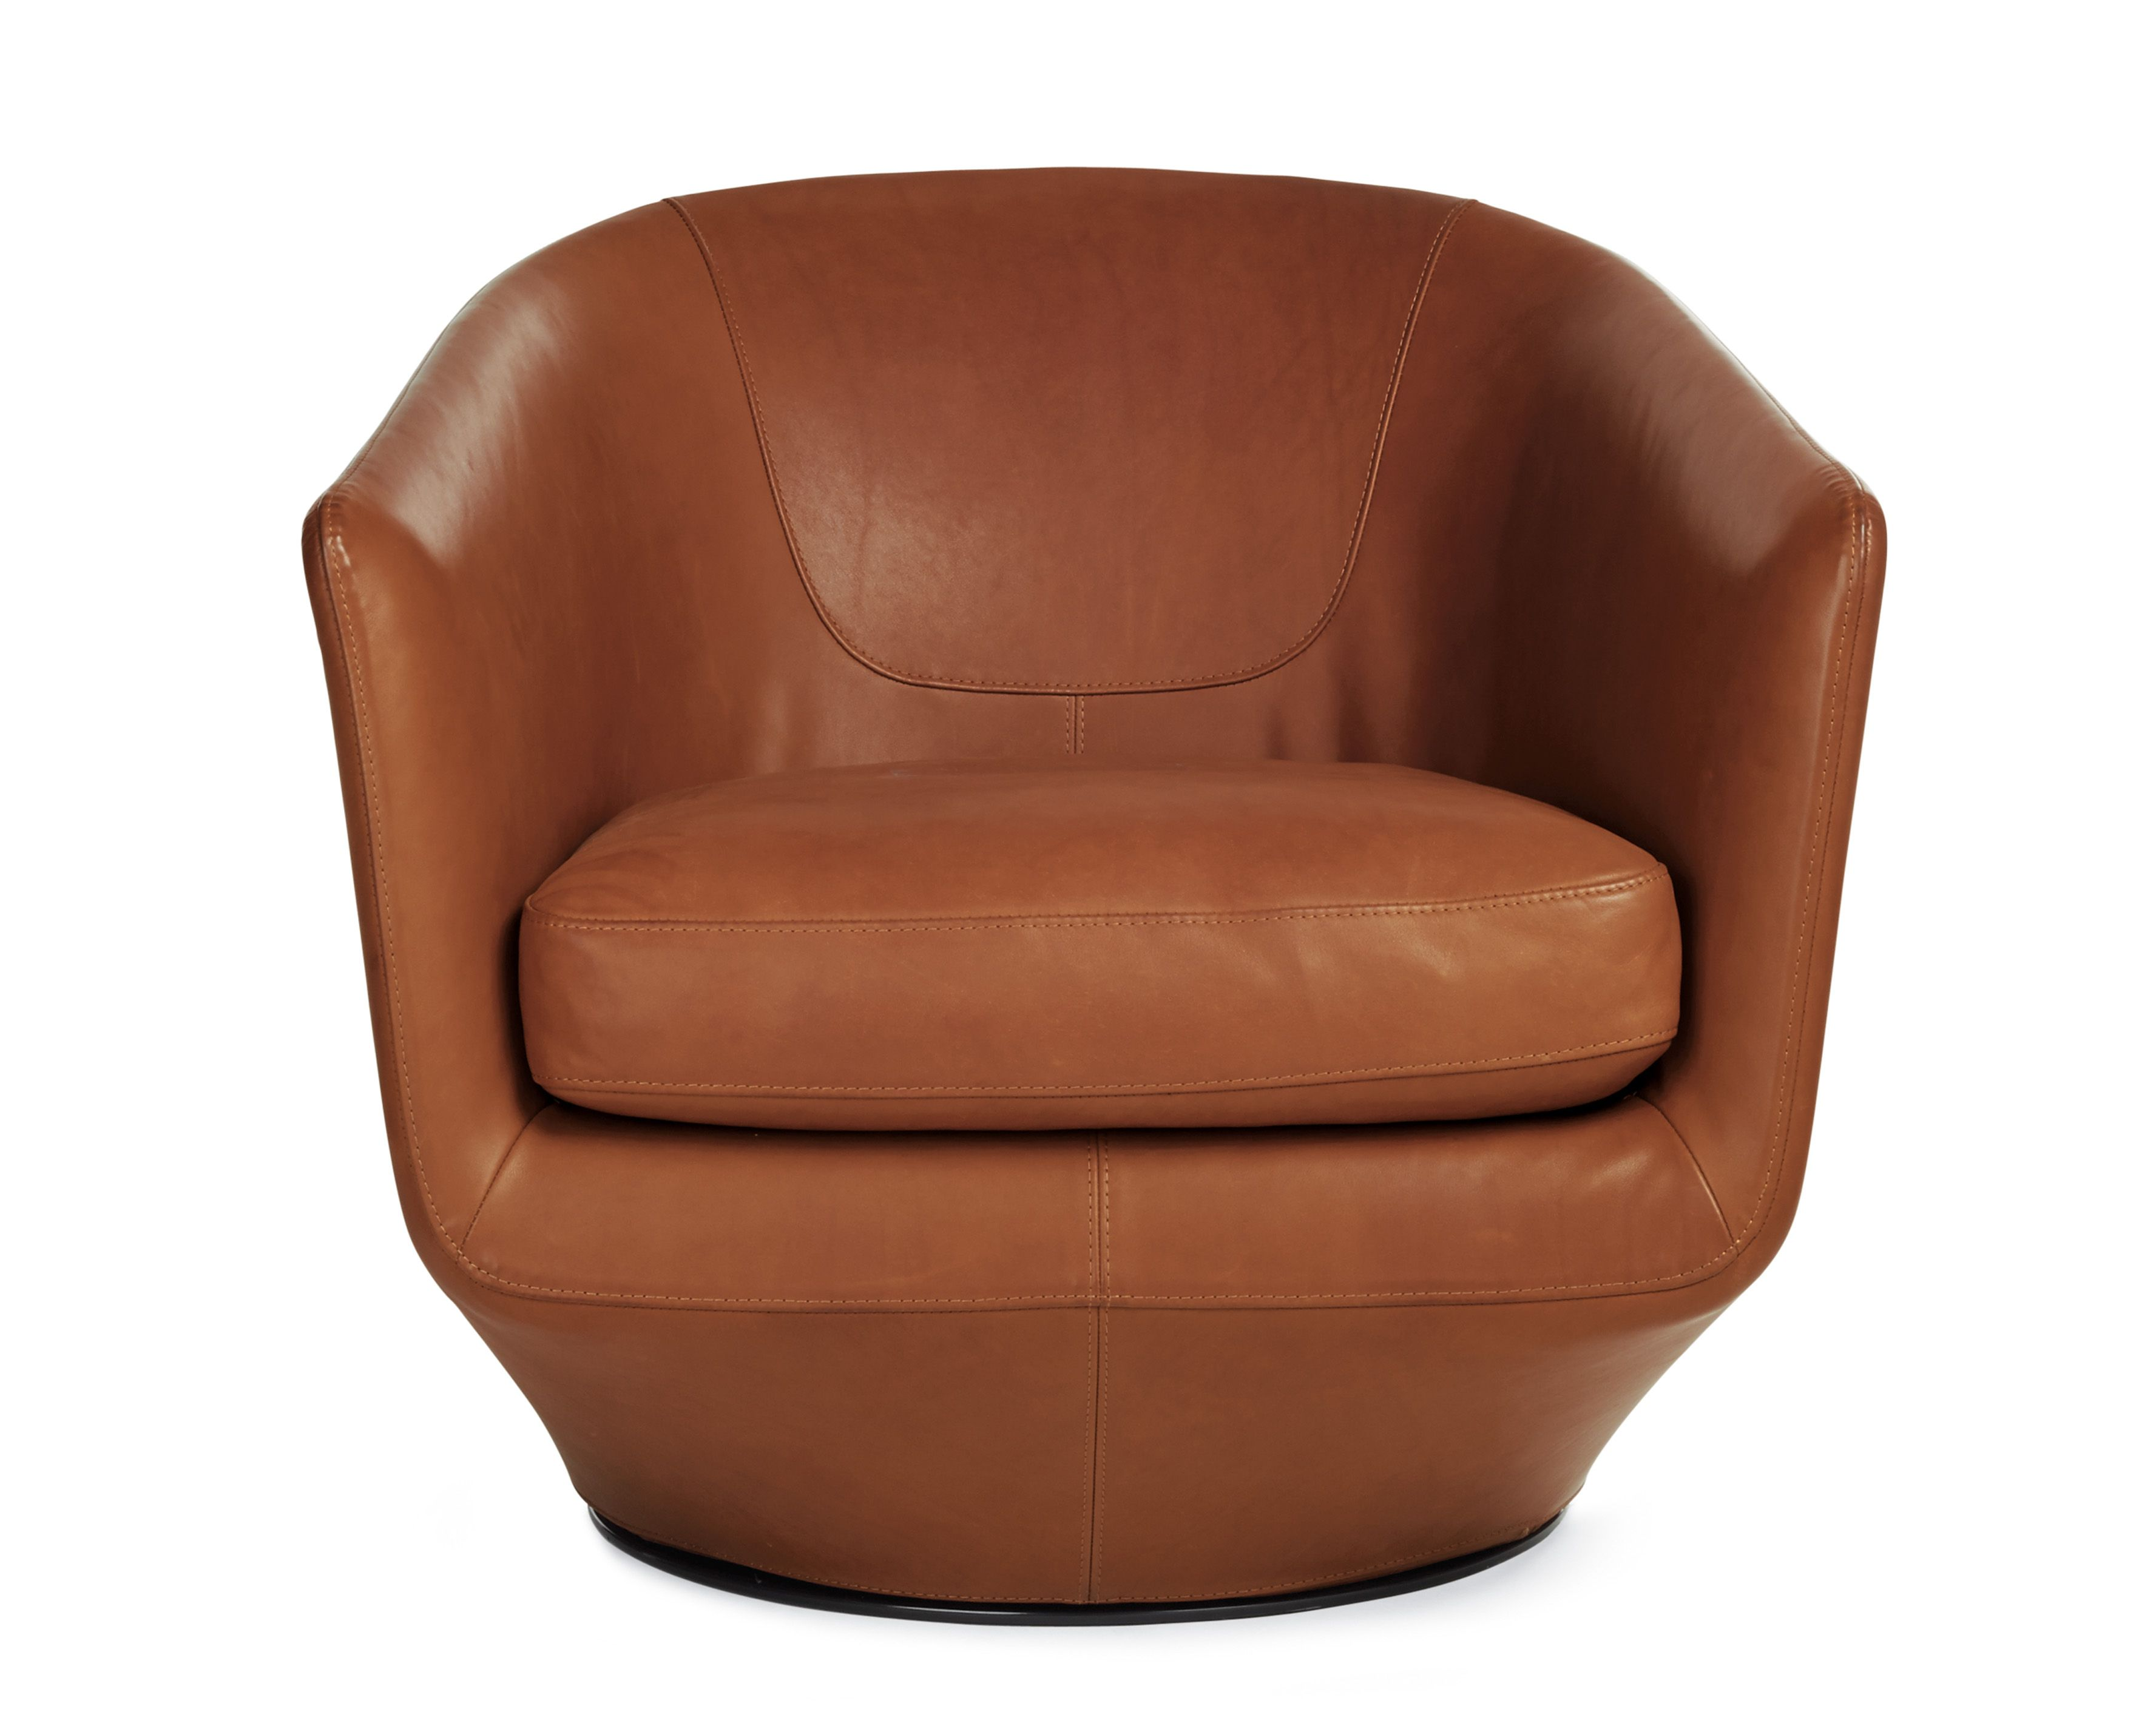 Swell U Turn Swivel Chair 2013 Products In 2019 Swivel Chair Caraccident5 Cool Chair Designs And Ideas Caraccident5Info